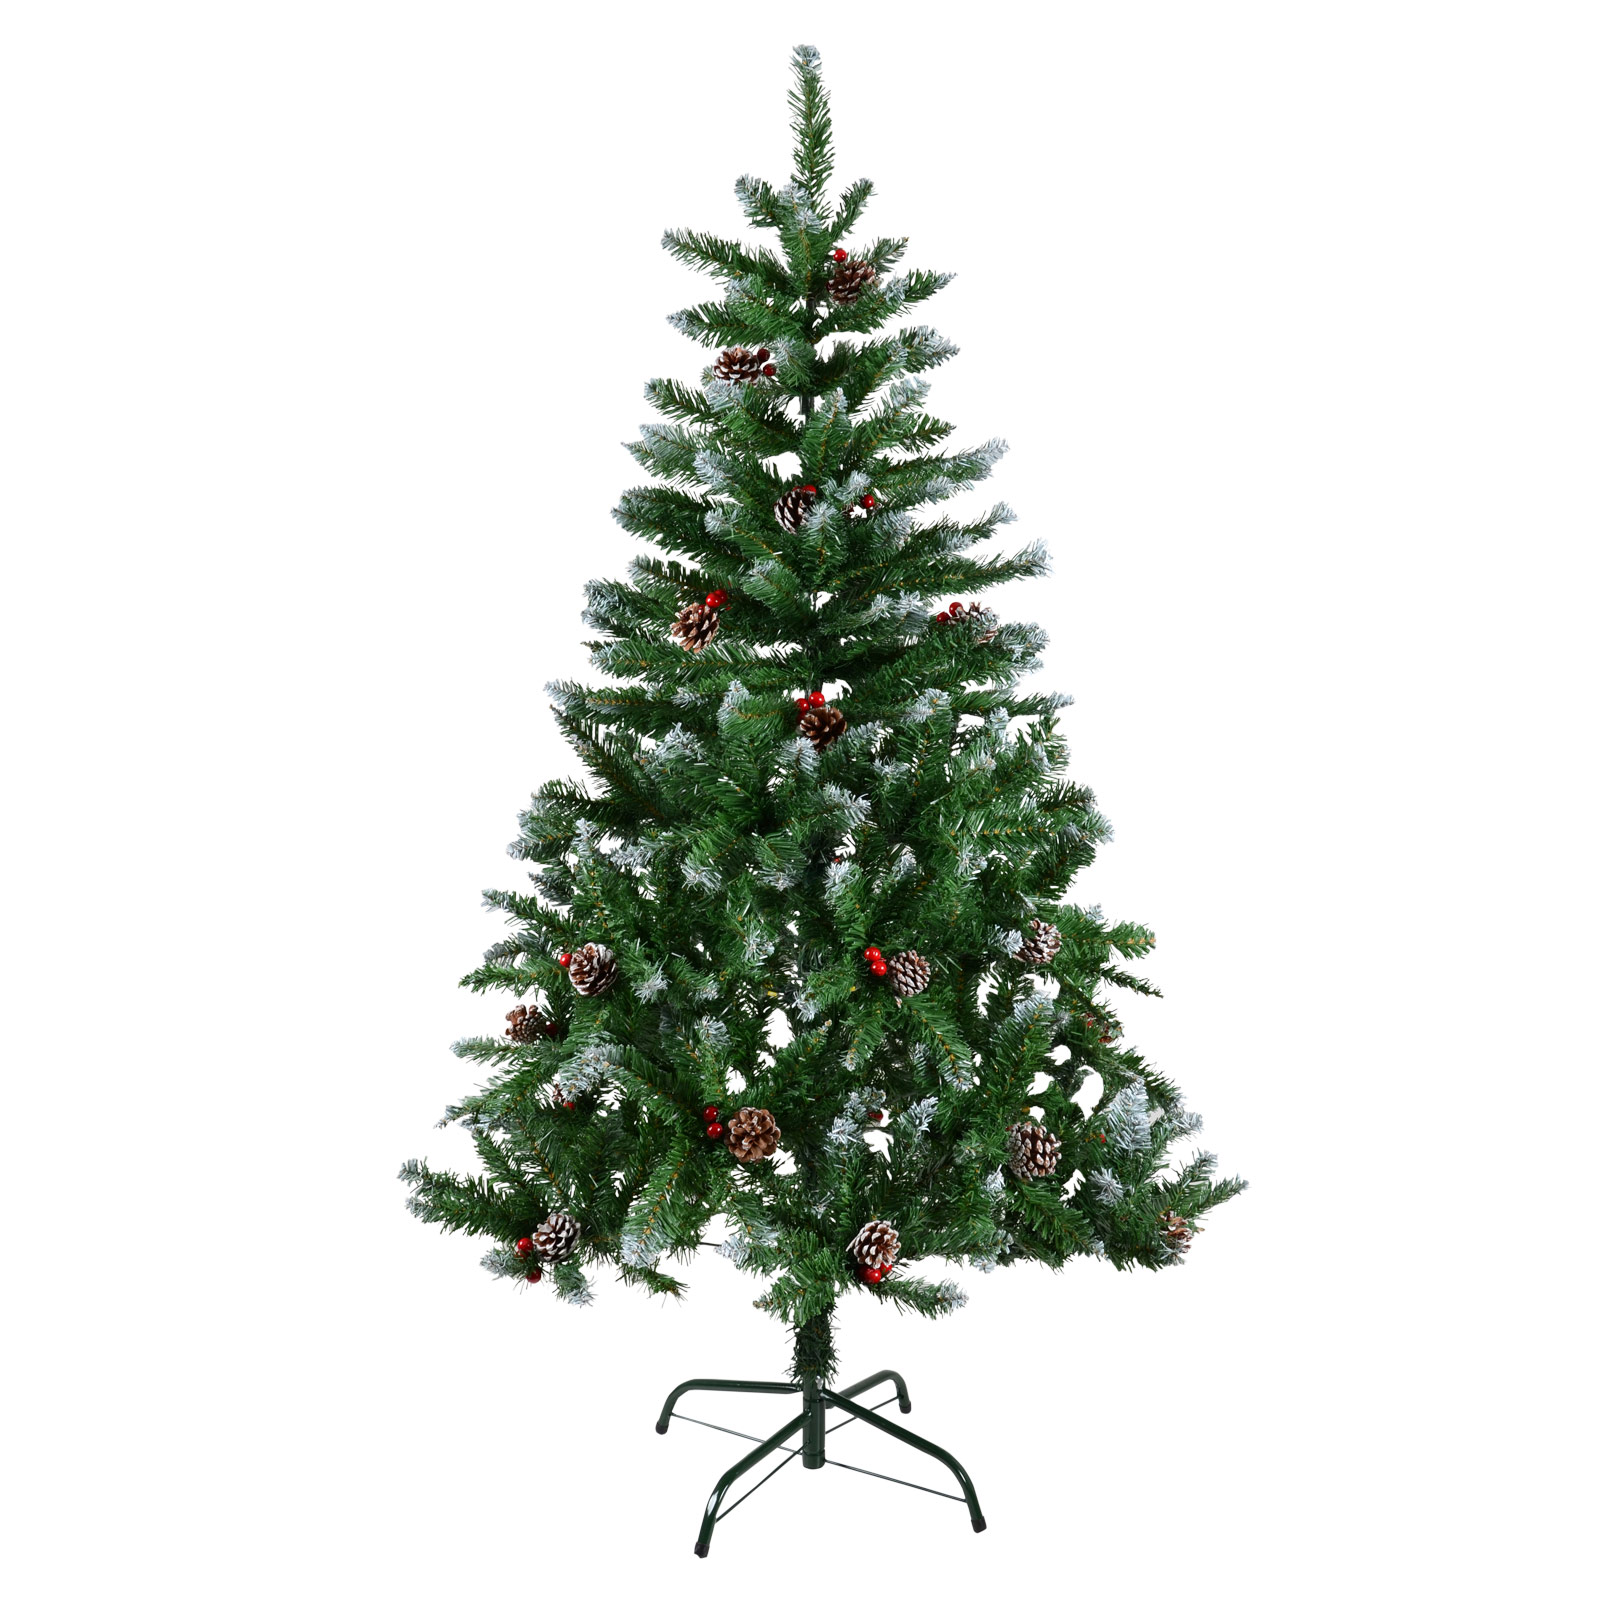 Artificial Christmas Tree With Pine Cones: 4ft 5ft 6ft 7ft Green Artificial Christmas Xmas Tree Snow